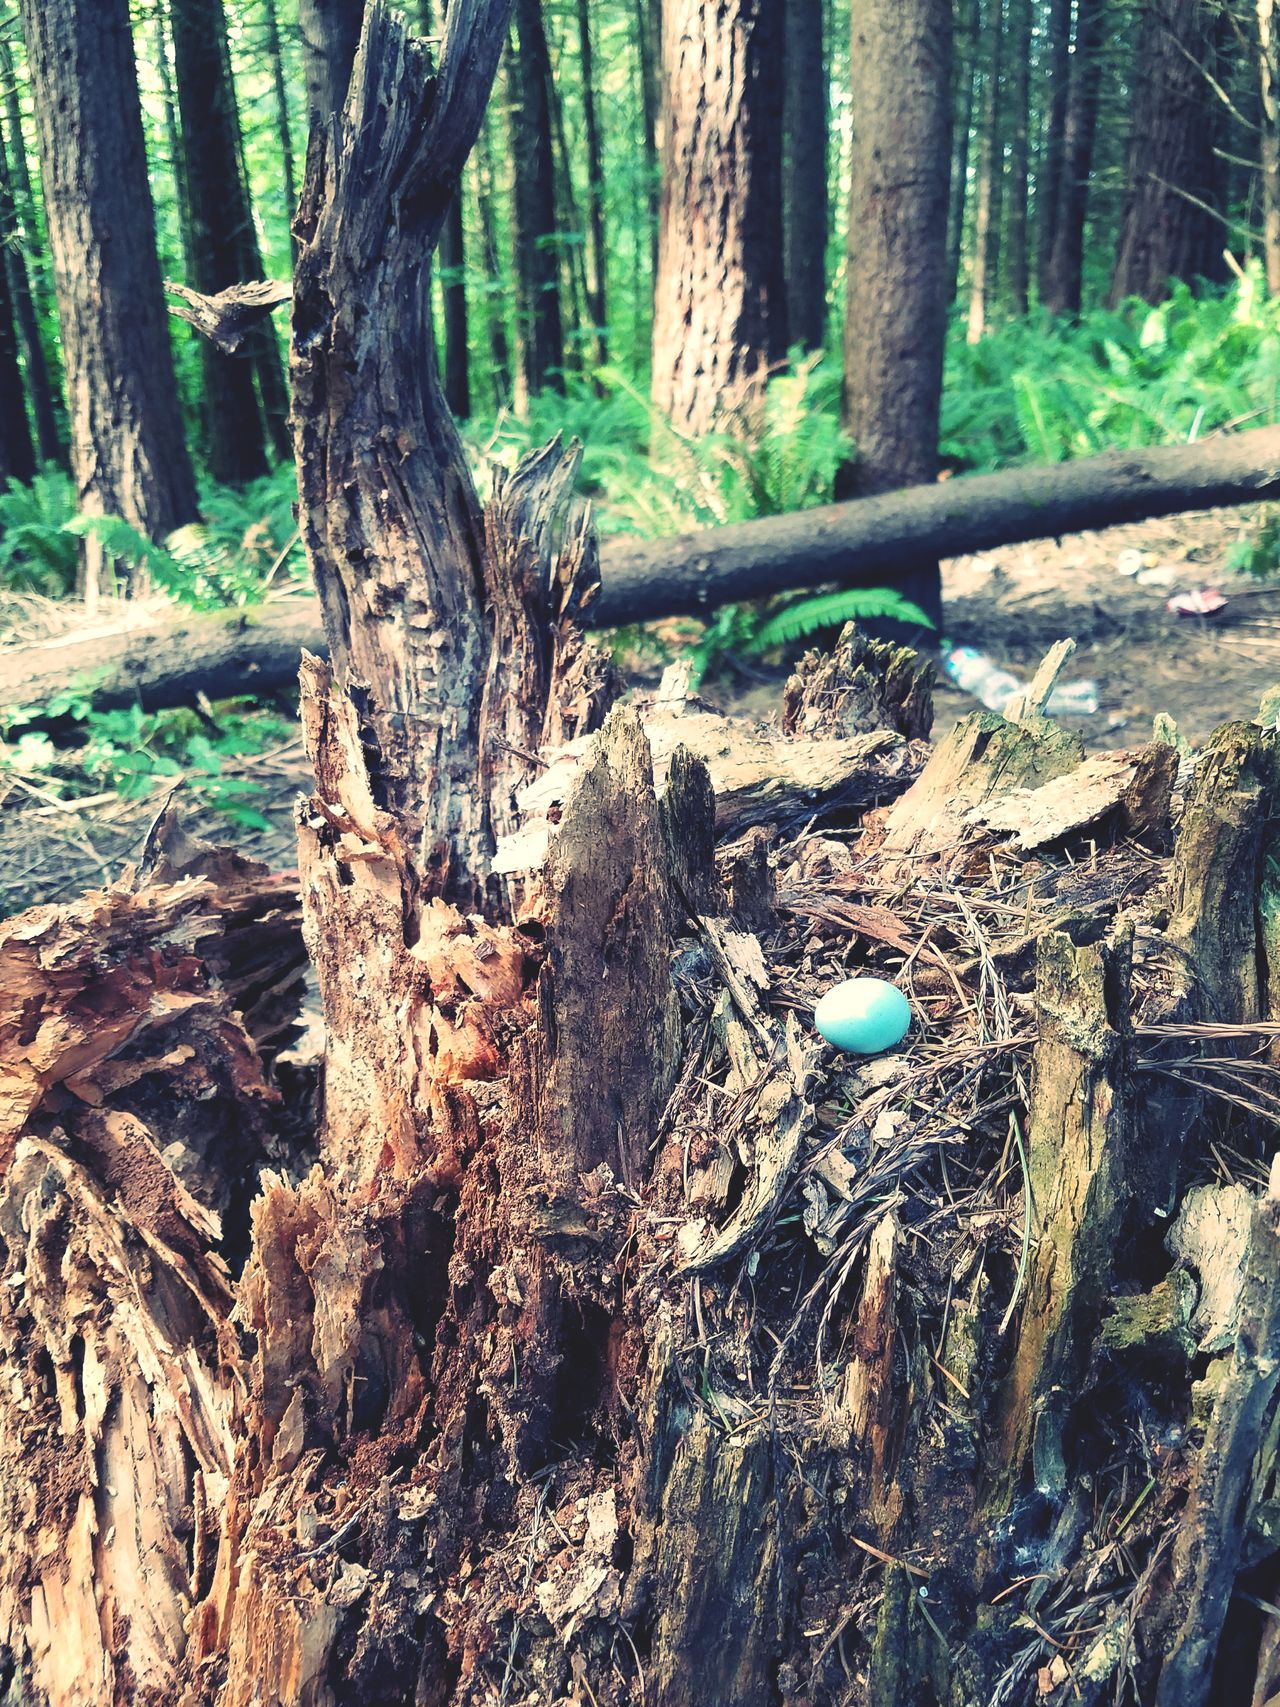 Egg Tree Trunk Tree Forest Nature Day Outdoors WoodLand No People Tranquility Growth Beauty In Nature Scenics Branch Close-up Bird Egg Blue